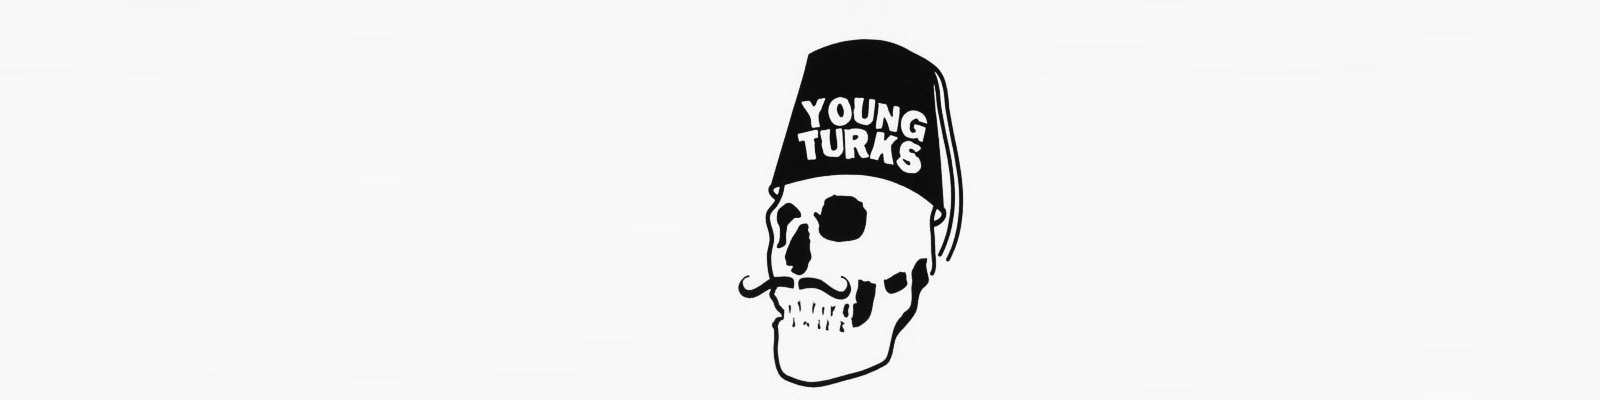 Young turks label profile picture